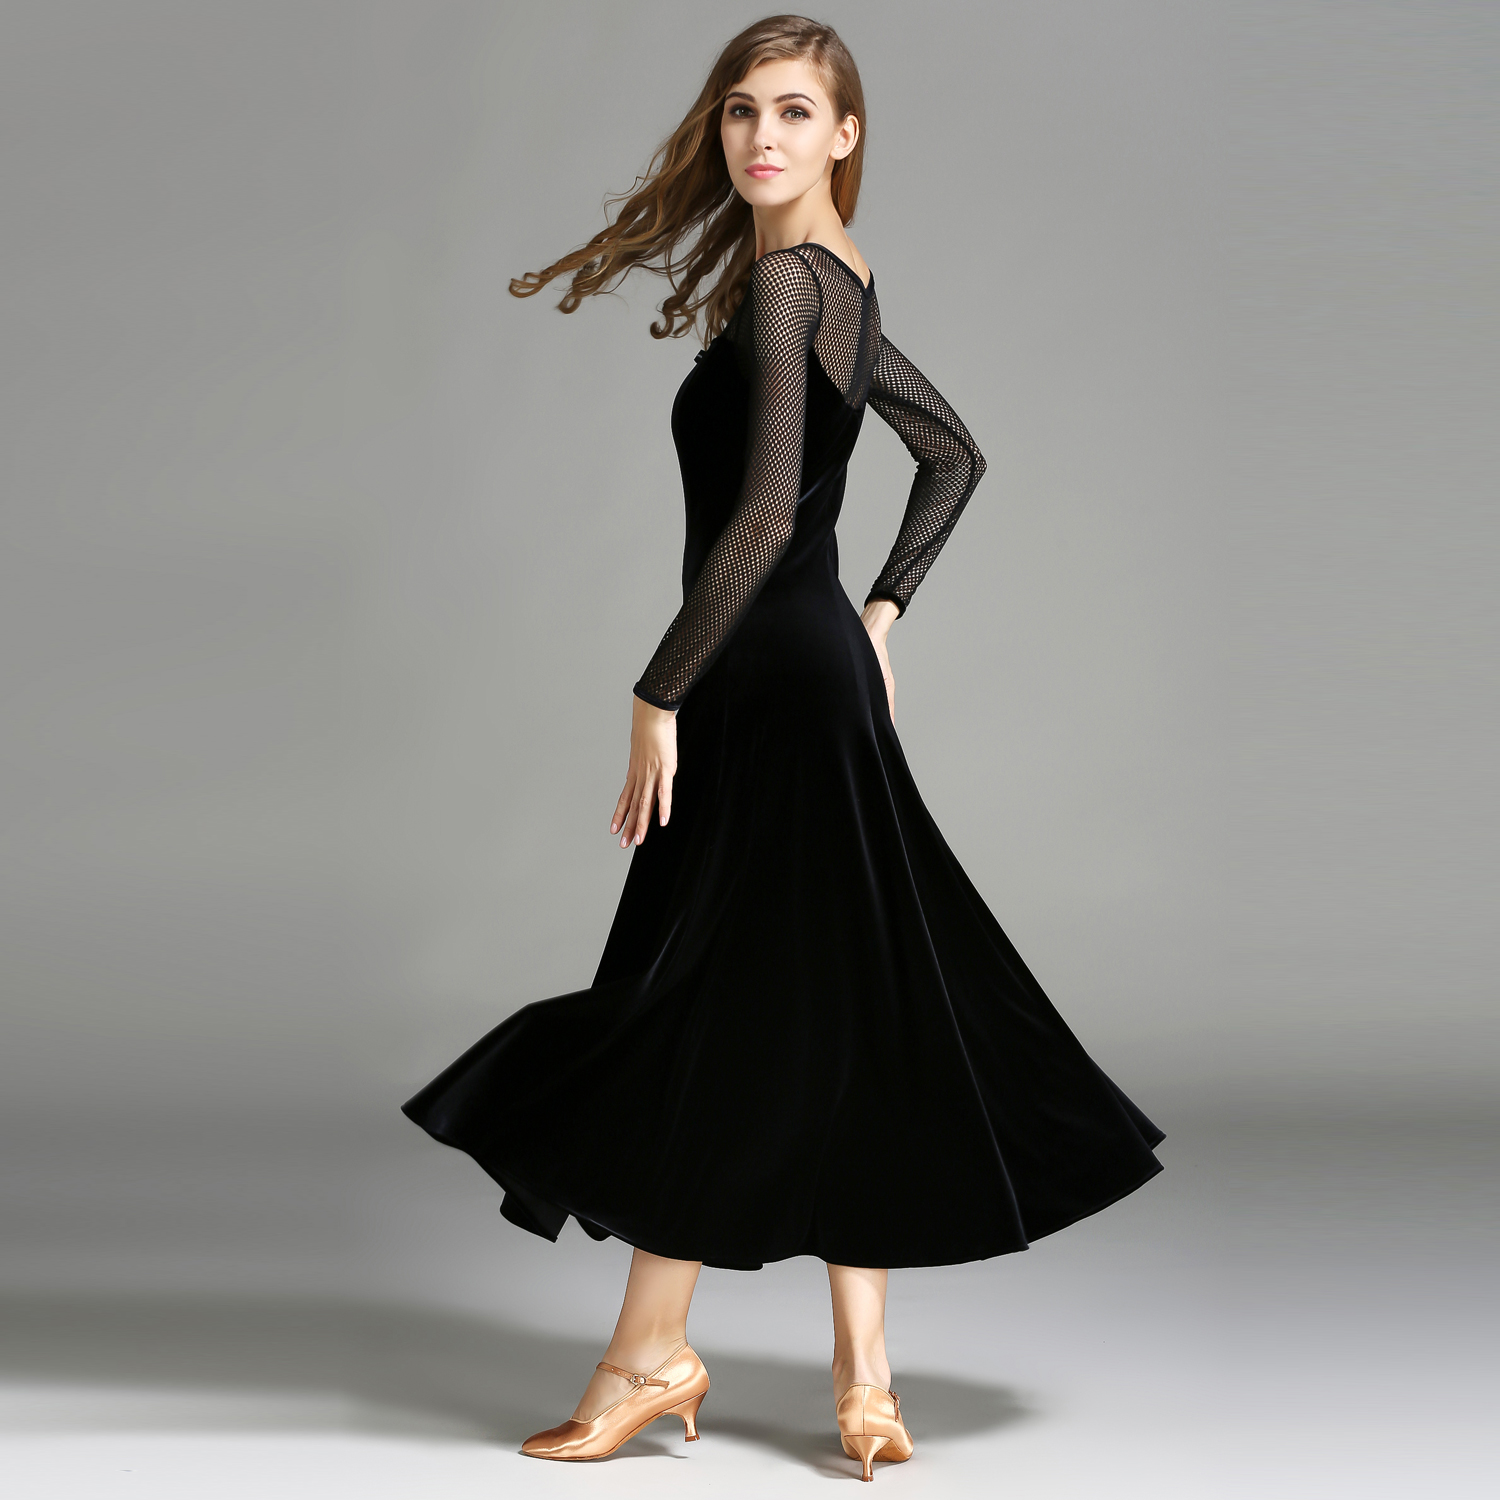 Modern Dance Costume Women Lady Adult Waltzing Tango Velvet Dancing Dress Ballroom Costume Evening Party DressModern Dance Costume Women Lady Adult Waltzing Tango Velvet Dancing Dress Ballroom Costume Evening Party Dress